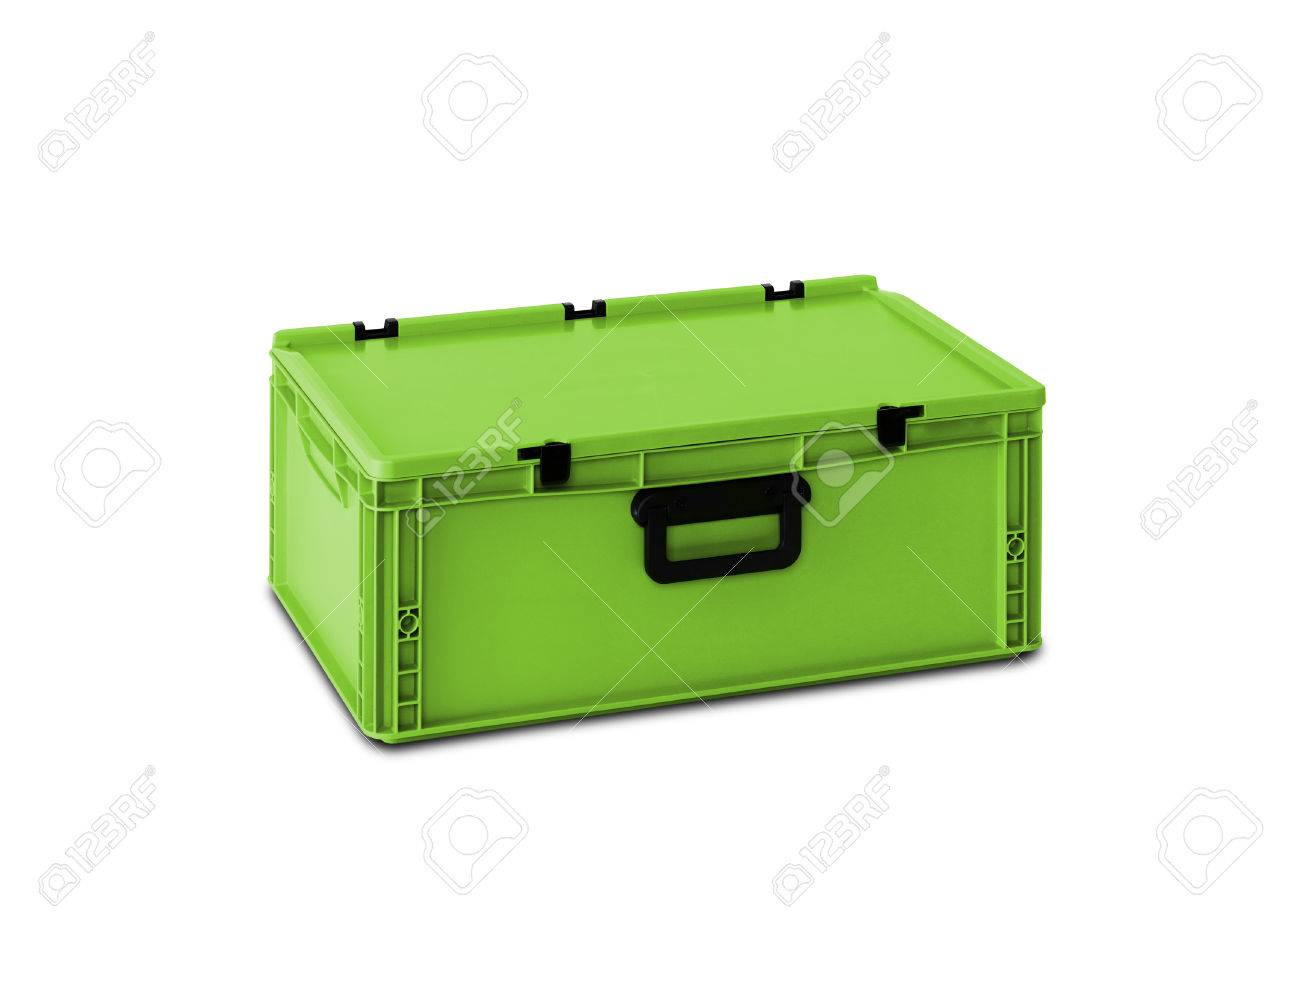 Box Kunststoff Stock Photo